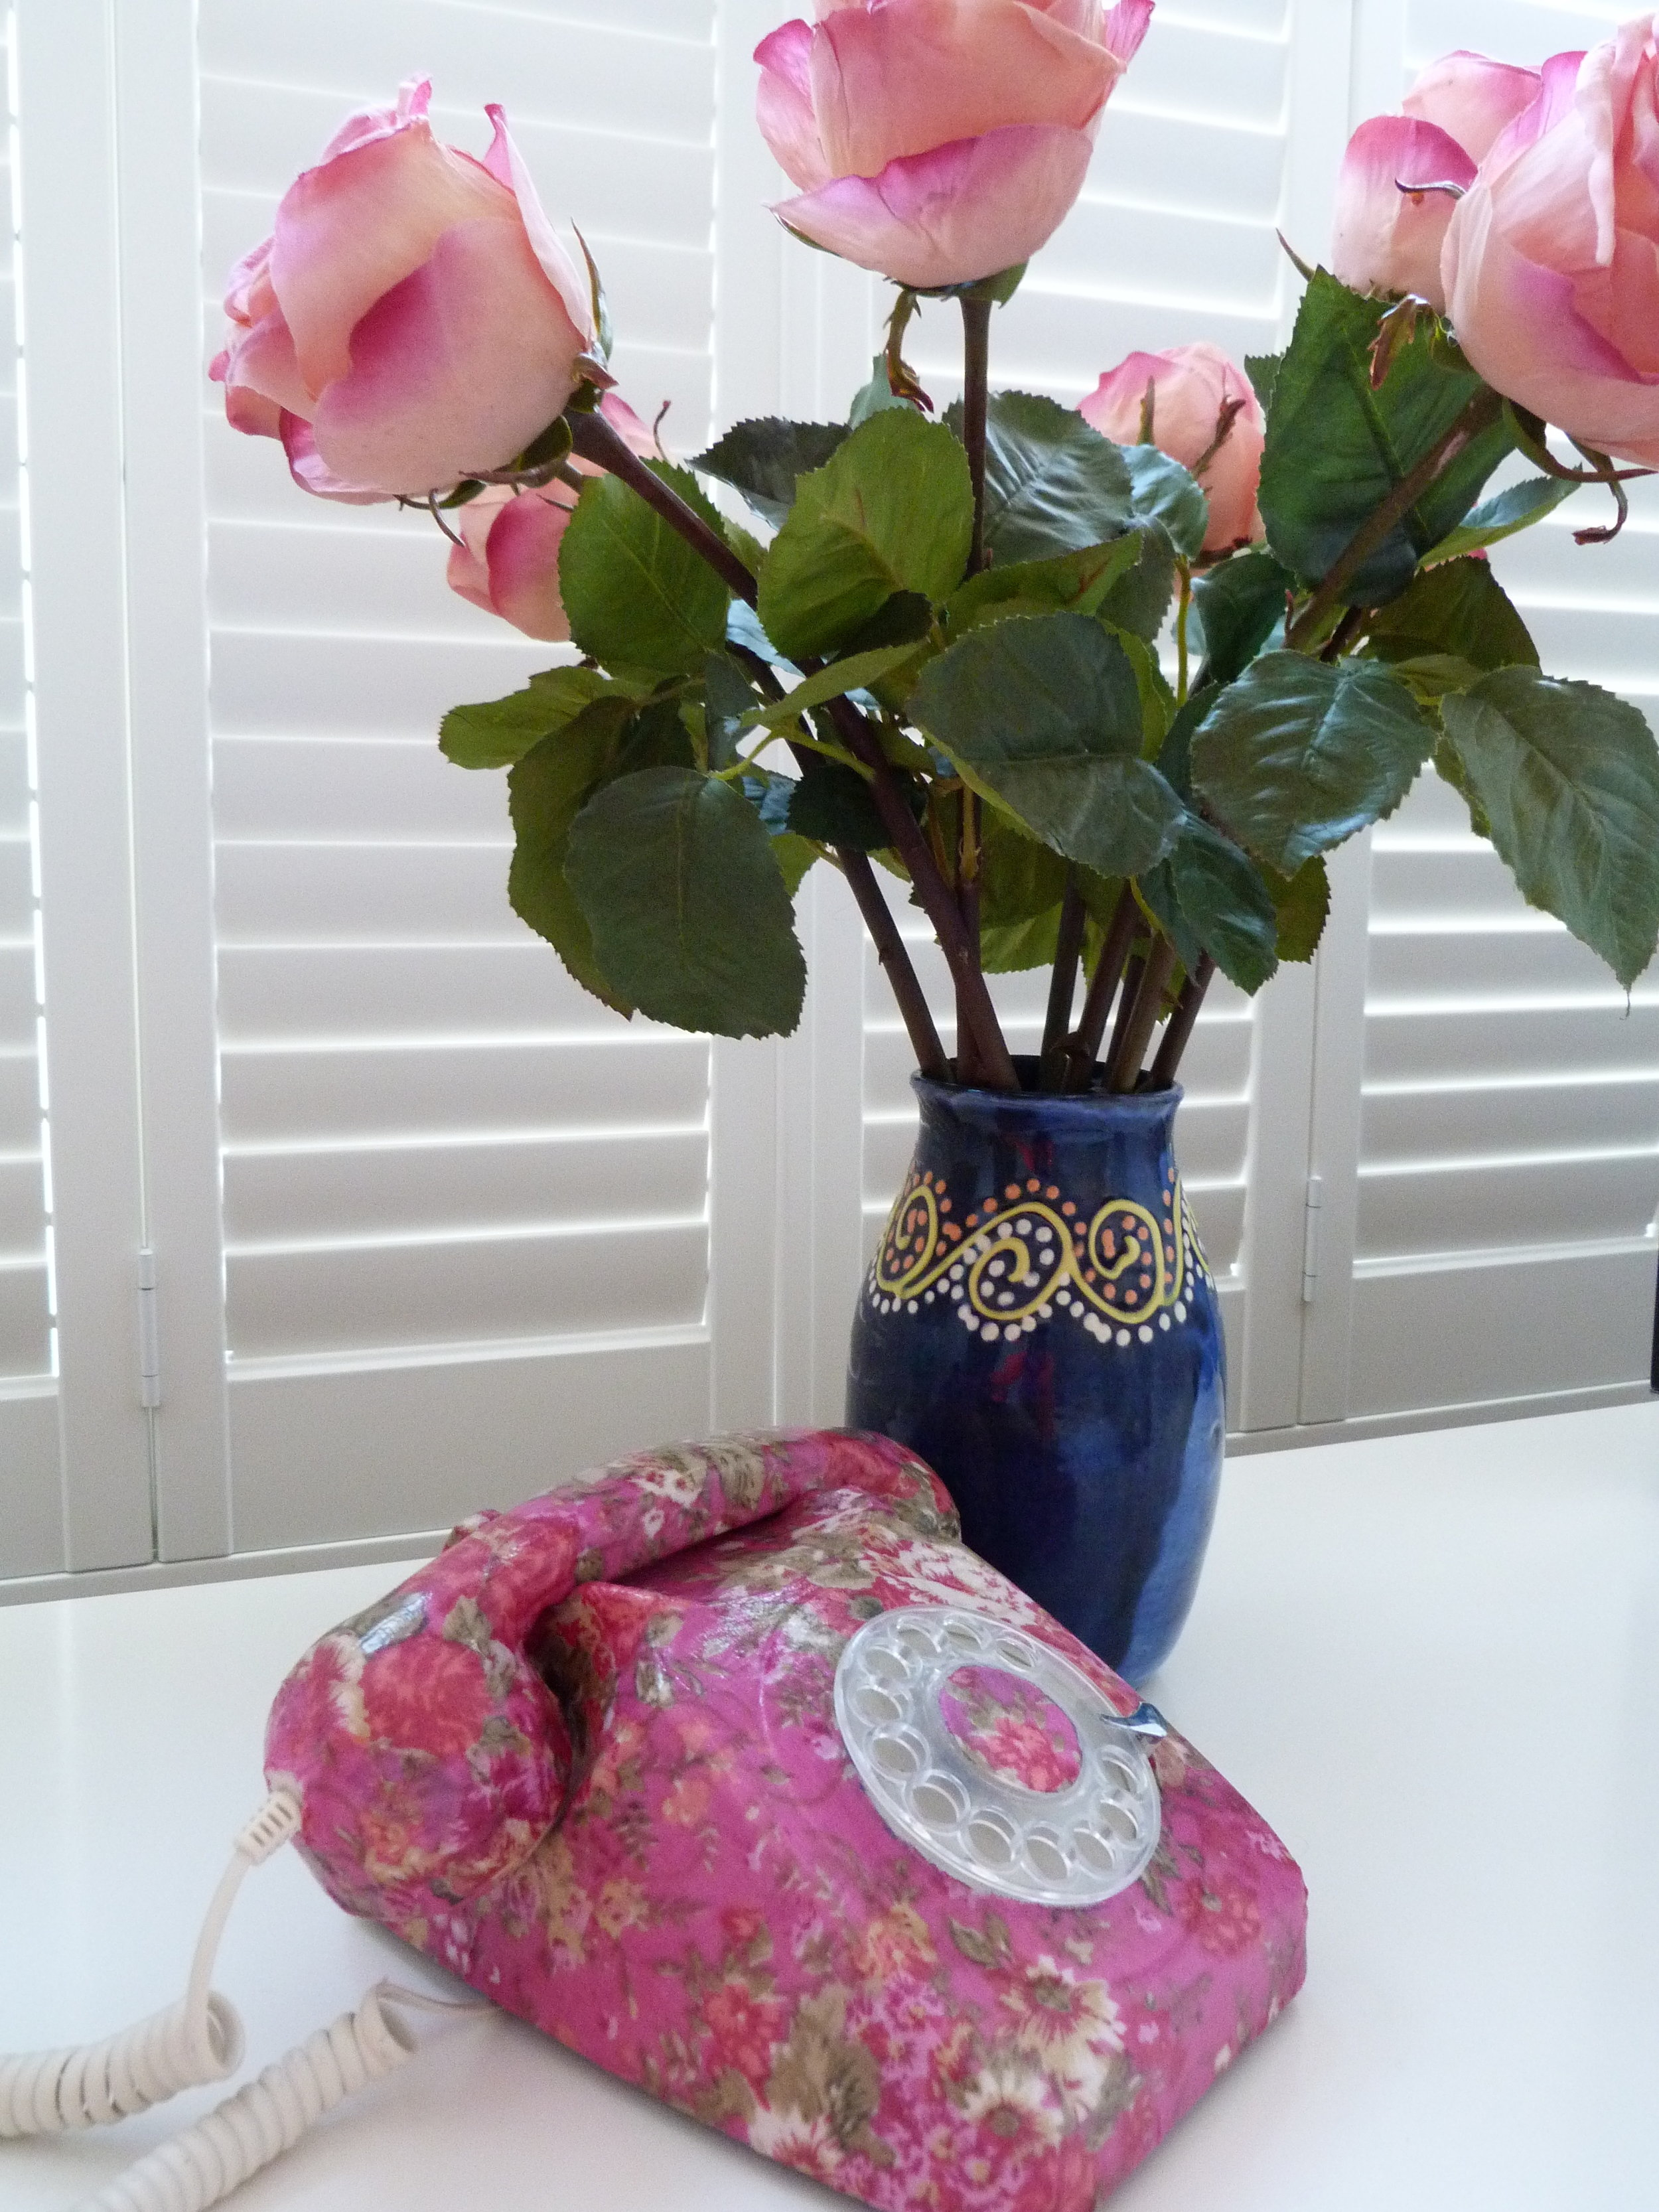 Roses & pink telephone